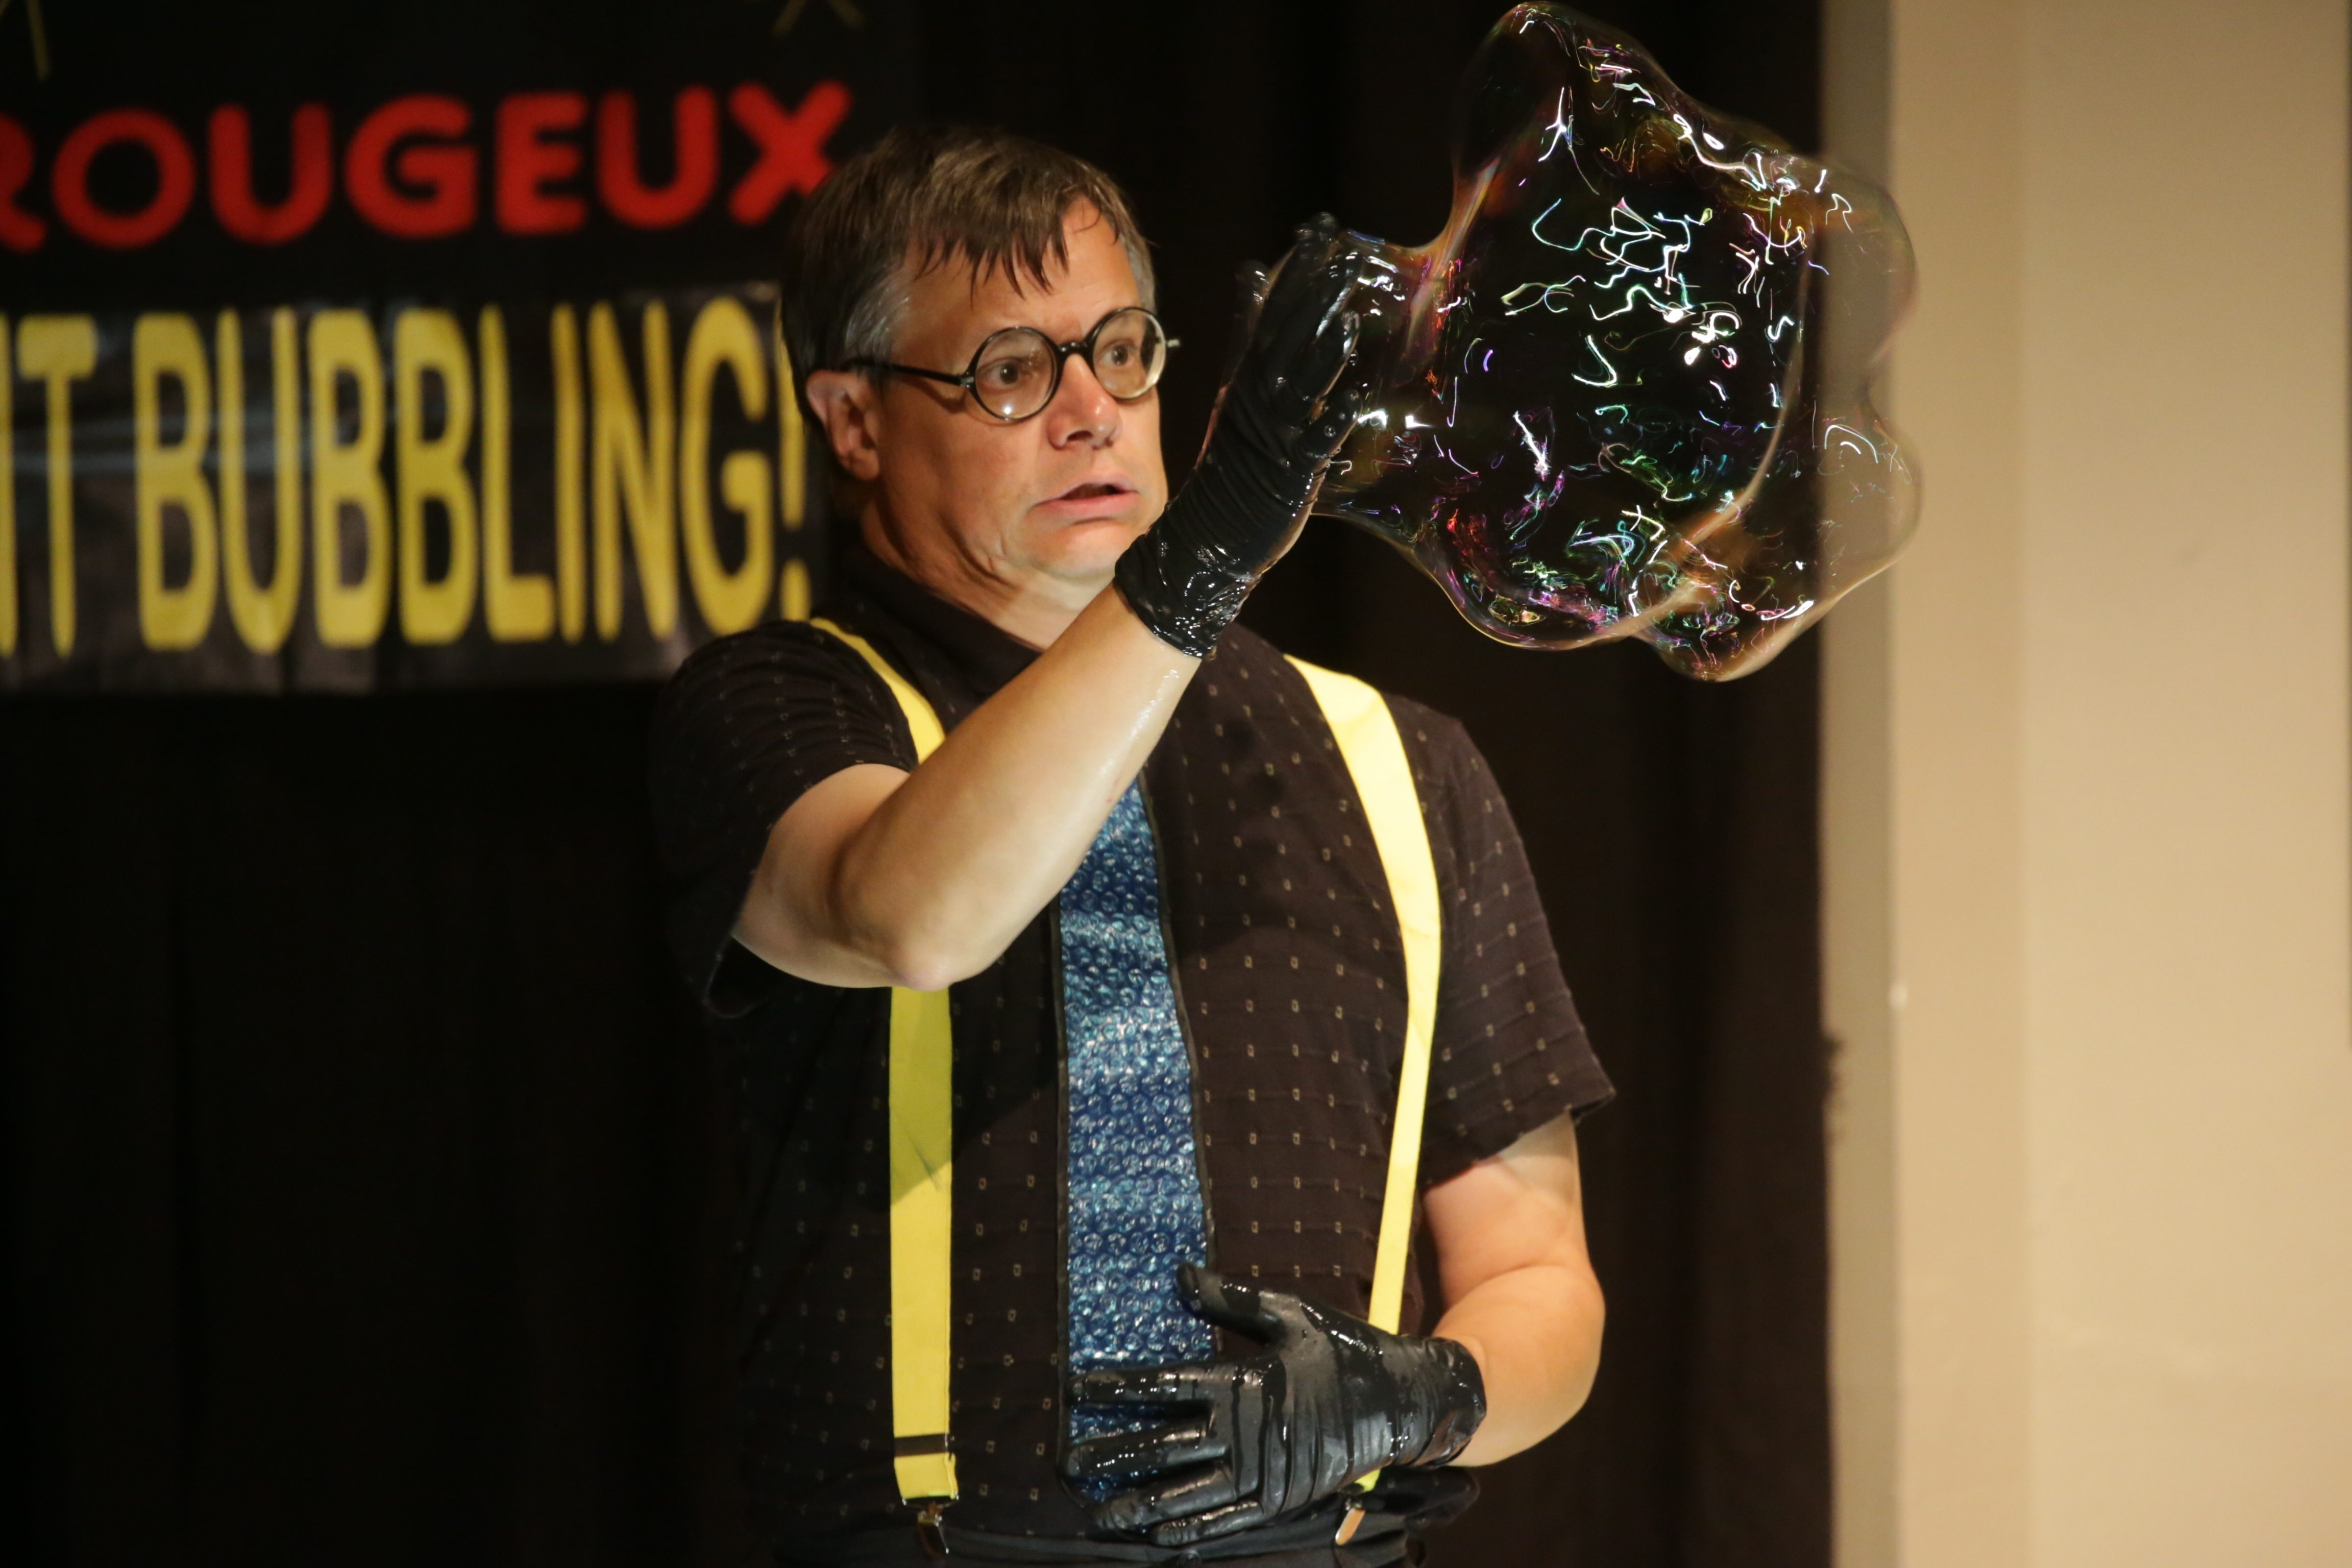 Doug Rougeux makes a large bubble during his Bubblemania show at the Buffalo Museum of Science's Bubblefest on Saturday.